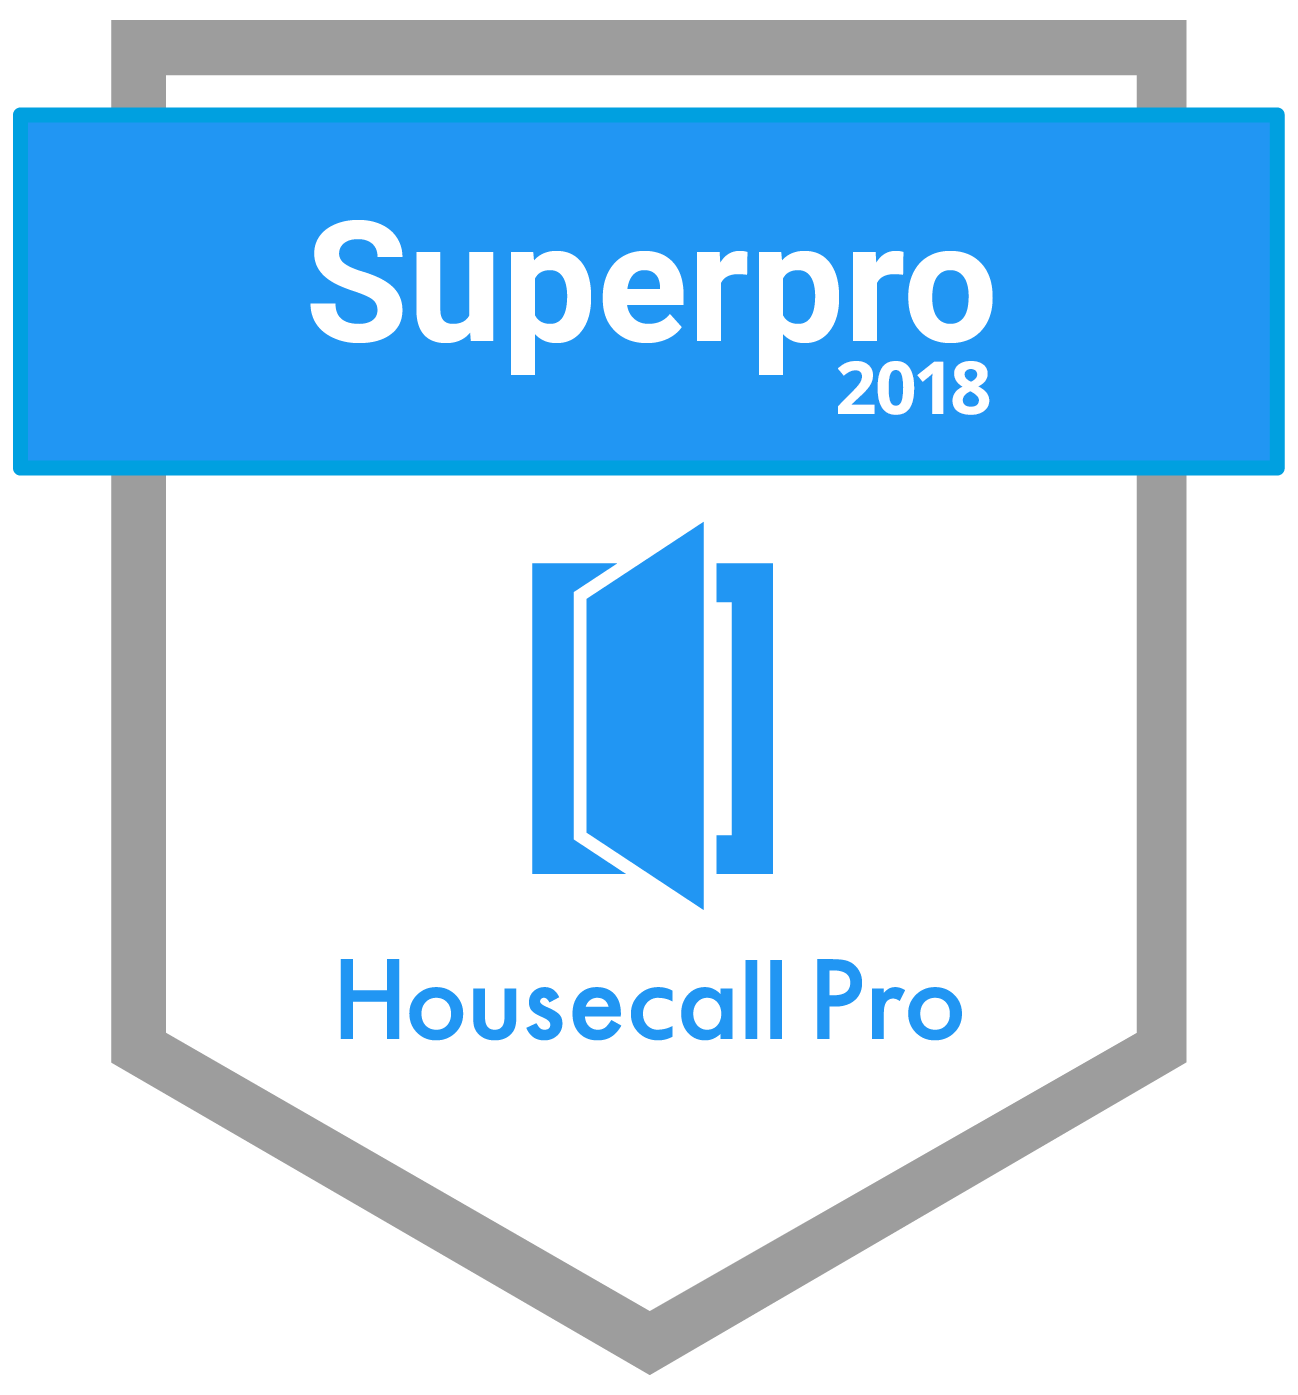 Spotless Tile & Grout were a Housecall Pro Superpro in 2018